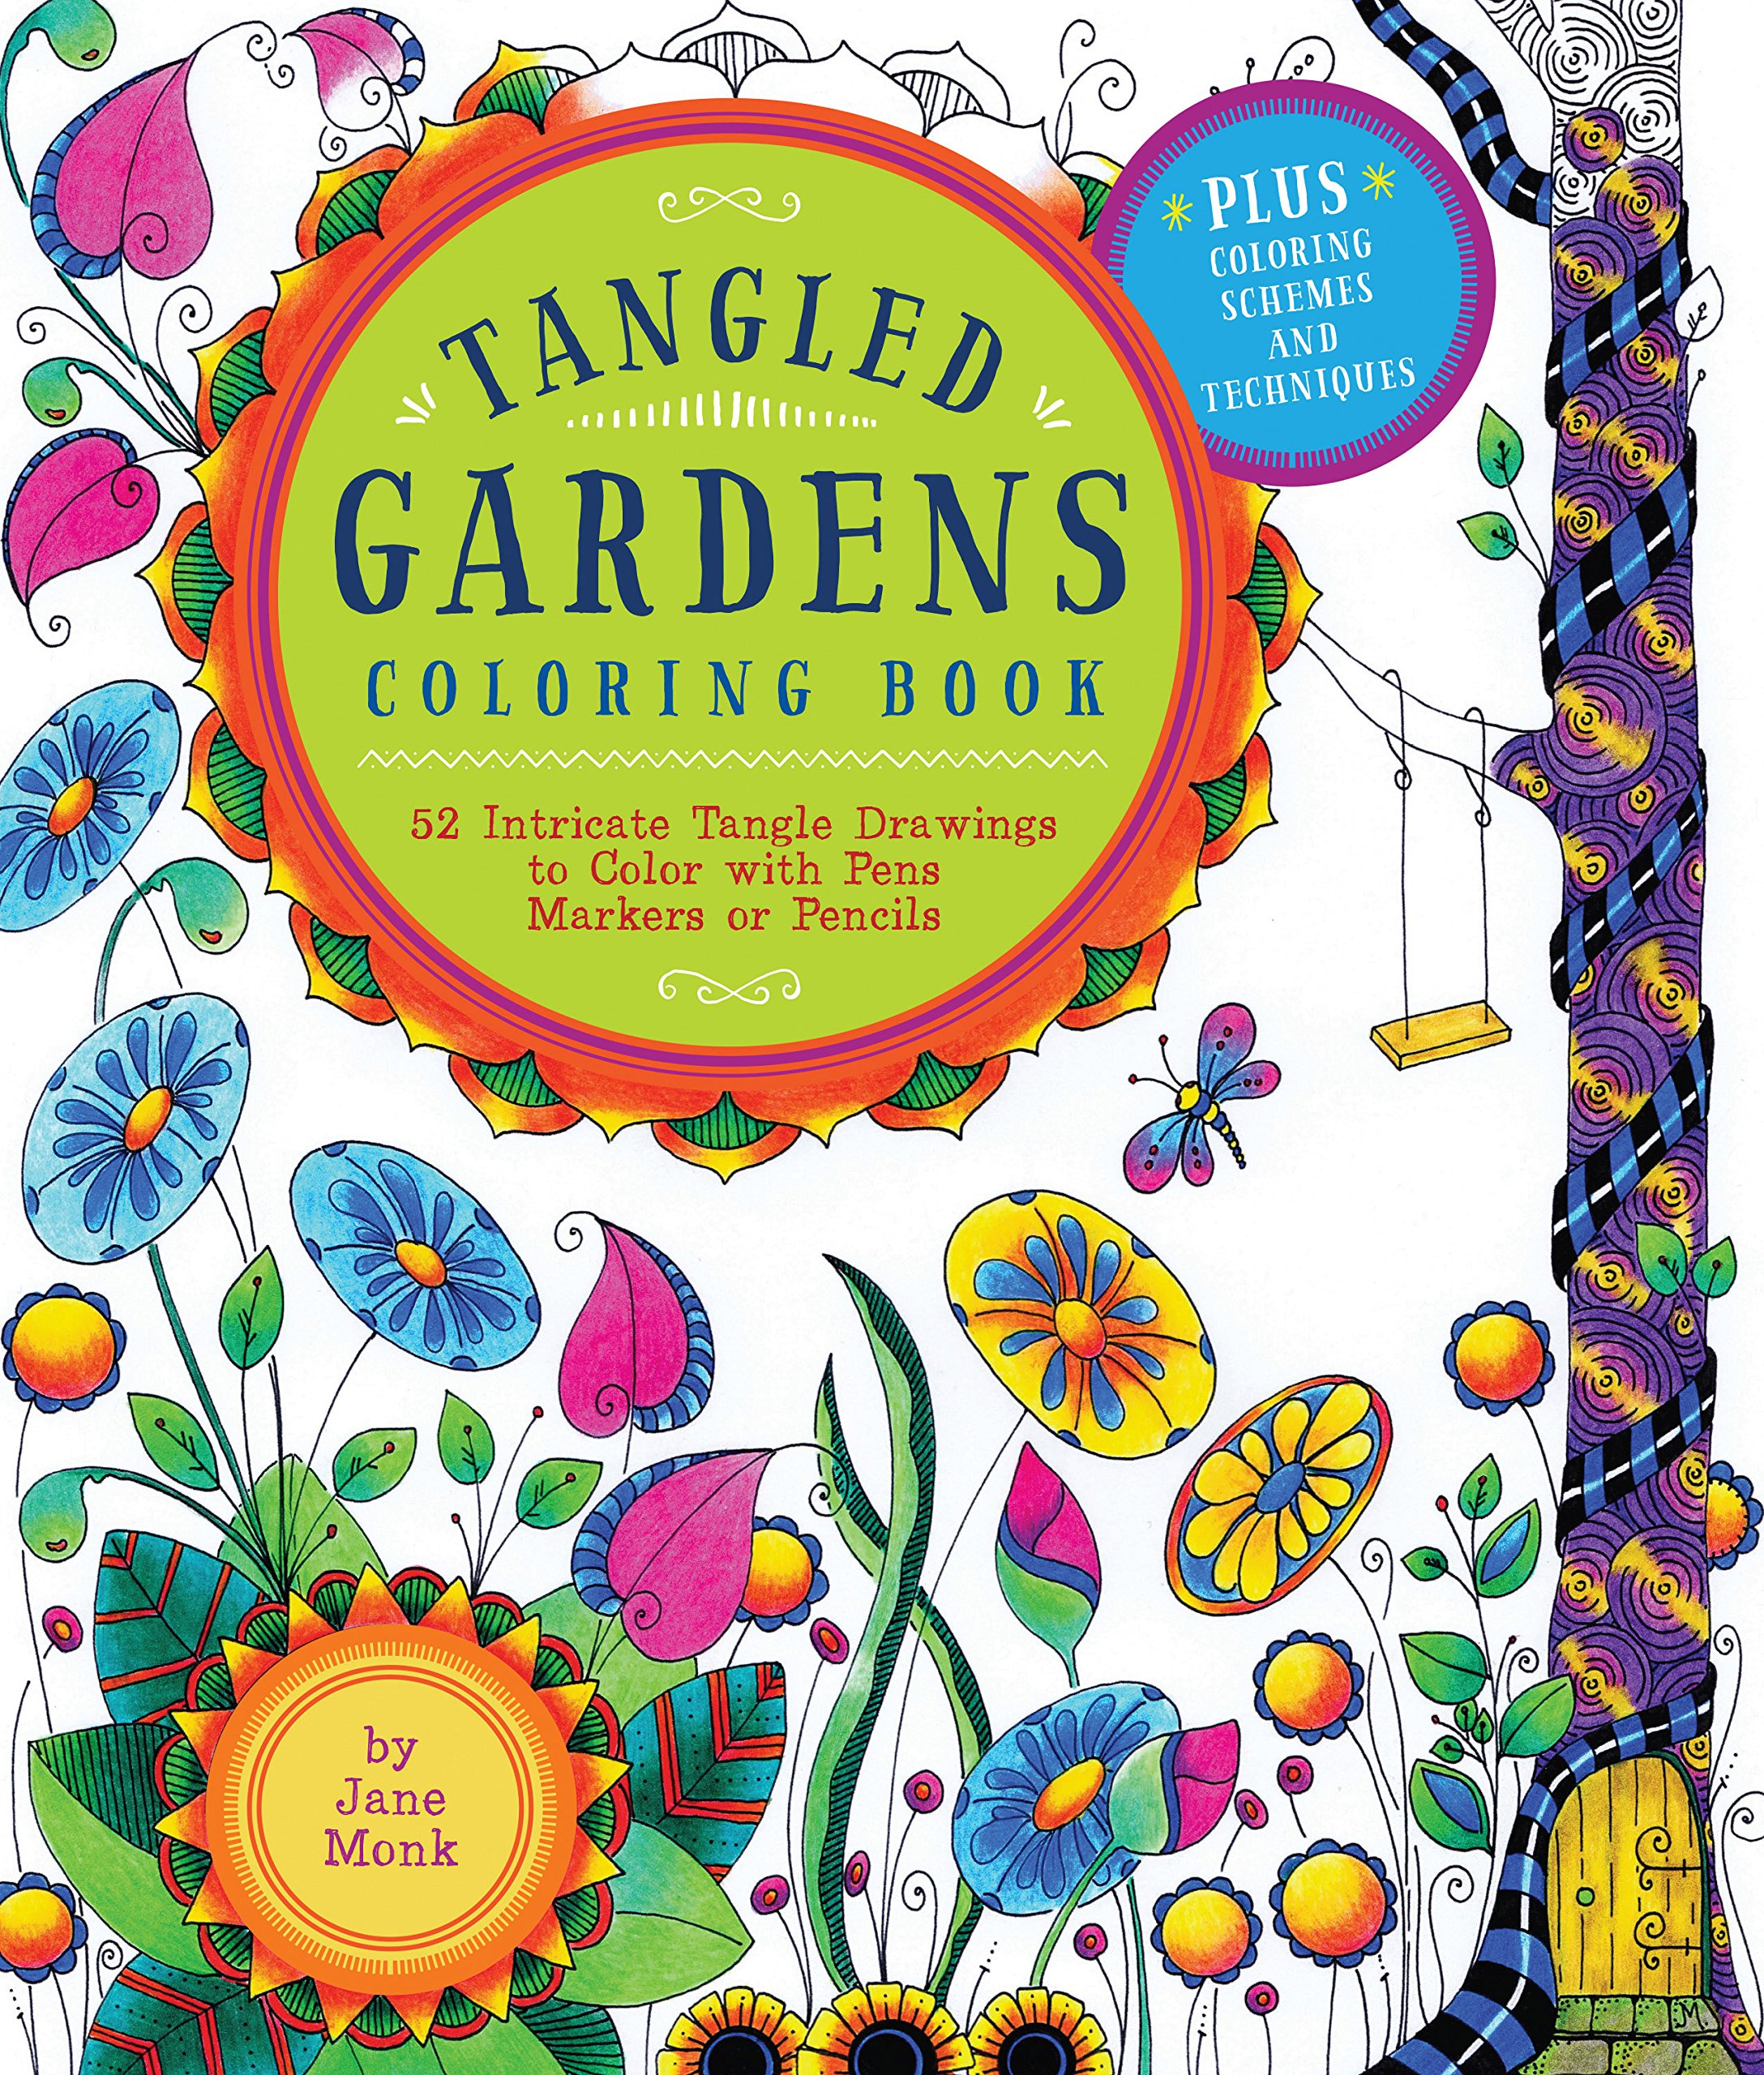 Amazon.com: Tangled Gardens Coloring Book: 52 Intricate Tangle ...